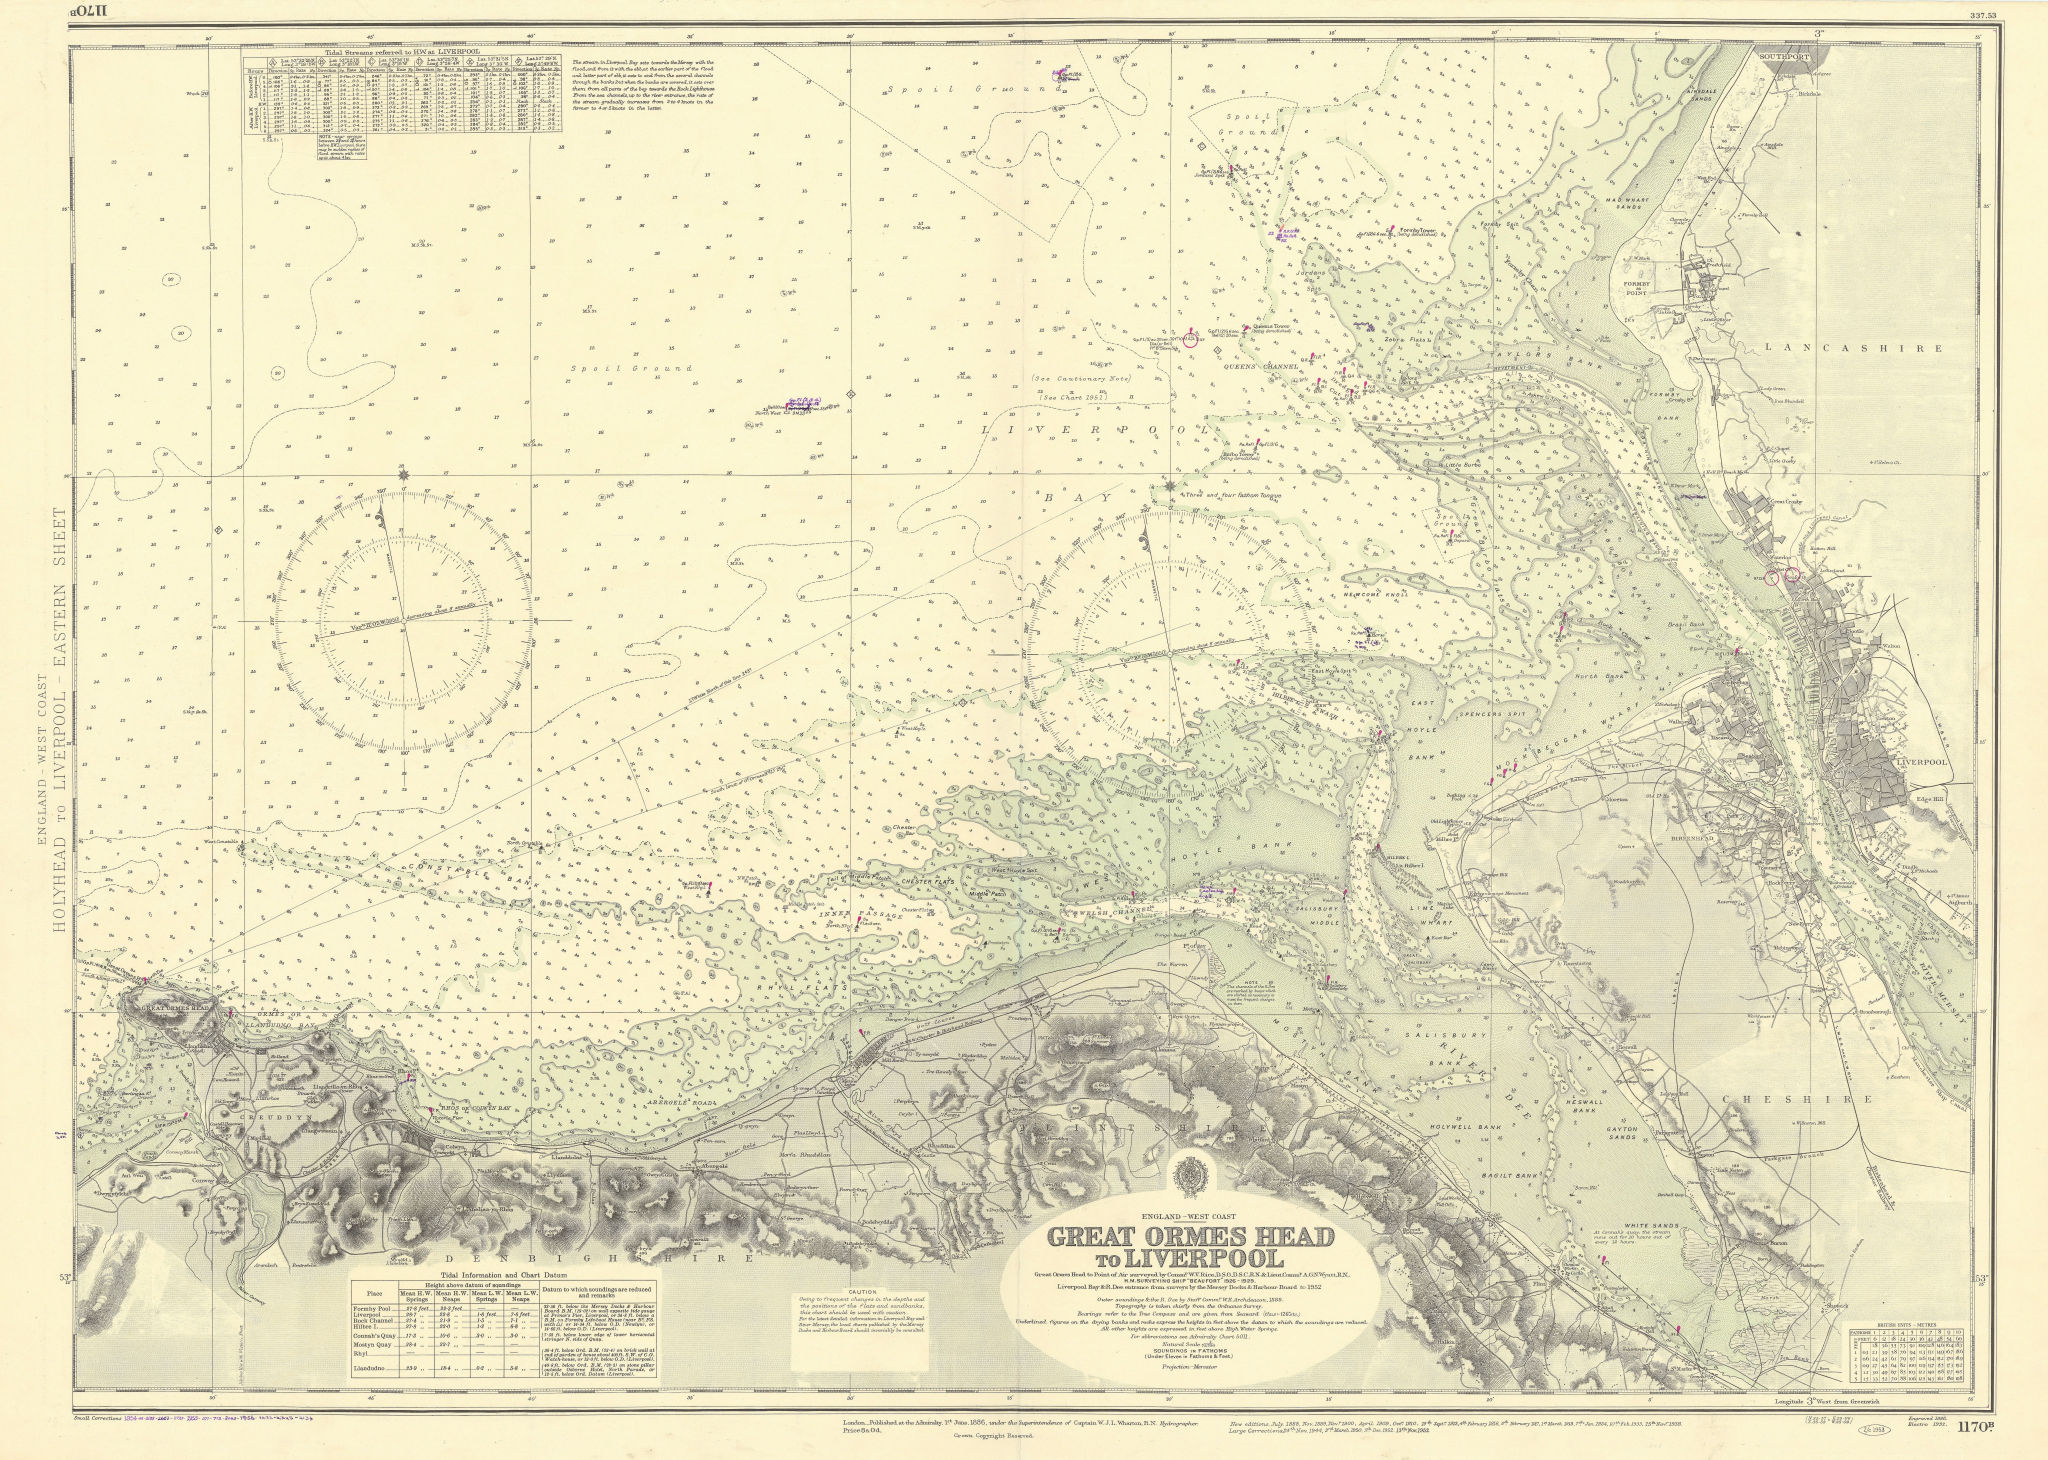 Liverpool Bay Wirral Dee Merseyside North Wales ADMIRALTY chart 1886 (1956) map